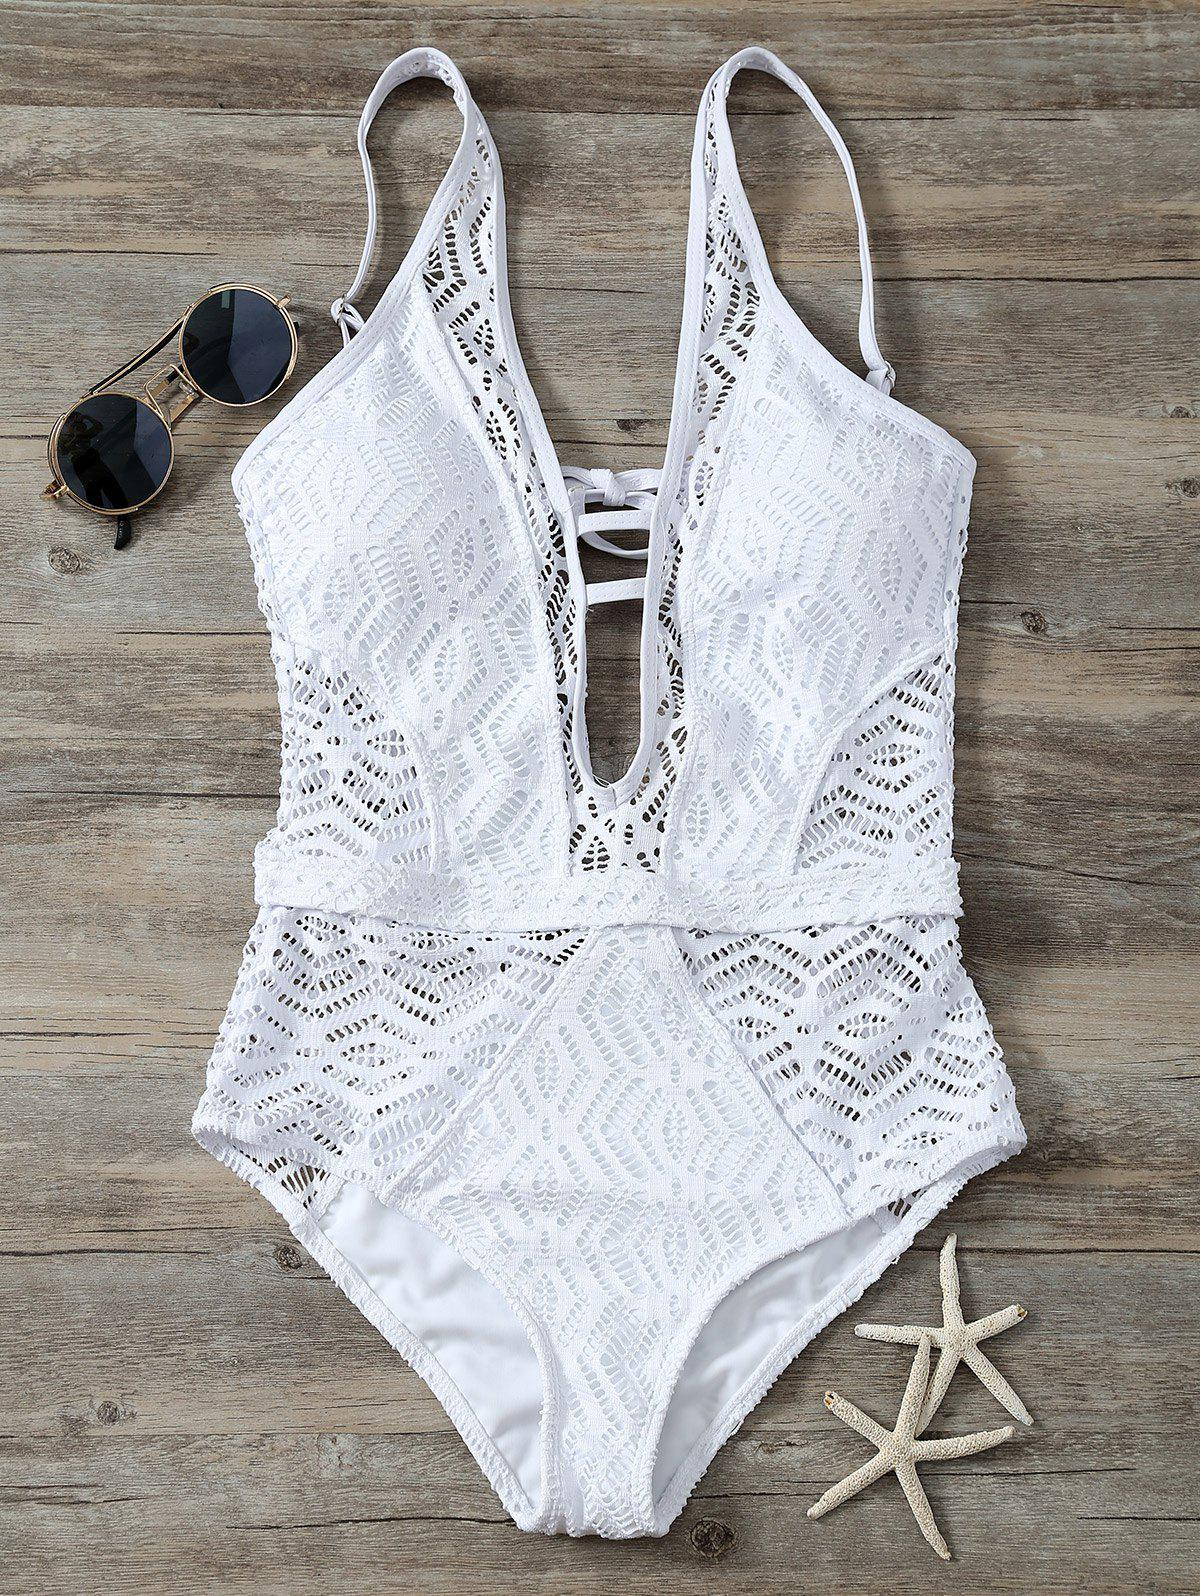 Cutout Backless Lace One Piece SwimwearWOMEN<br><br>Size: L; Color: WHITE; Swimwear Type: One Piece; Gender: For Women; Material: Polyester; Bra Style: Padded; Support Type: Wire Free; Neckline: Plunging Neck; Pattern Type: Solid; Embellishment: Criss-Cross; Waist: Natural; Elasticity: Elastic; Weight: 0.2700kg; Package Contents: 1 x Swimwear;